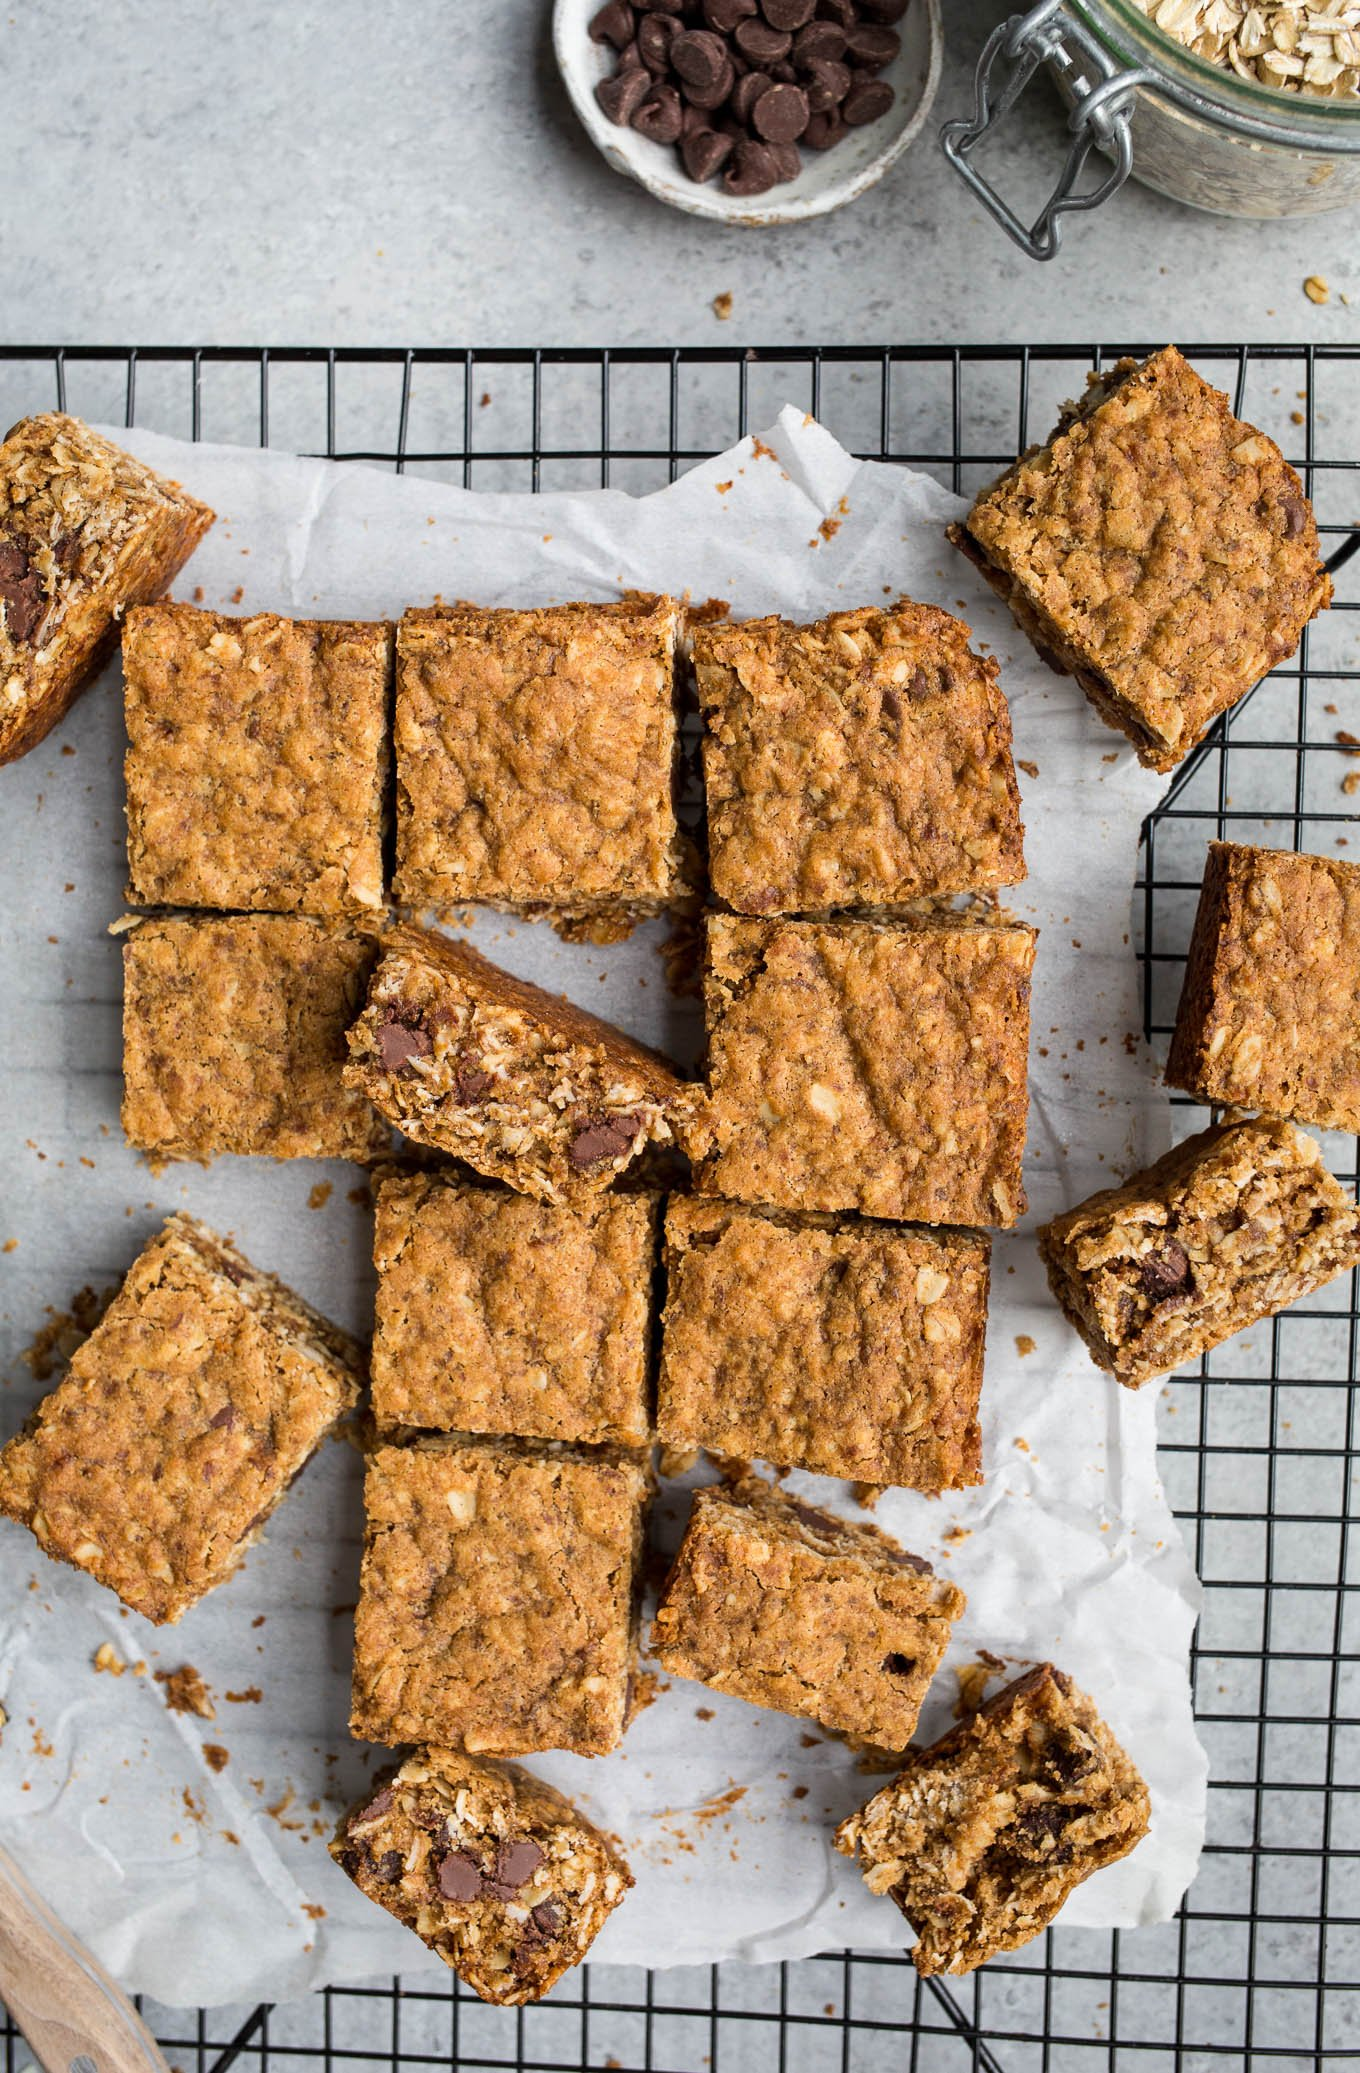 Easy, whole-grain Gluten-Free Oatmeal Chocolate Chip Bars (vegan, refined sugar-free) | saltedplains.com